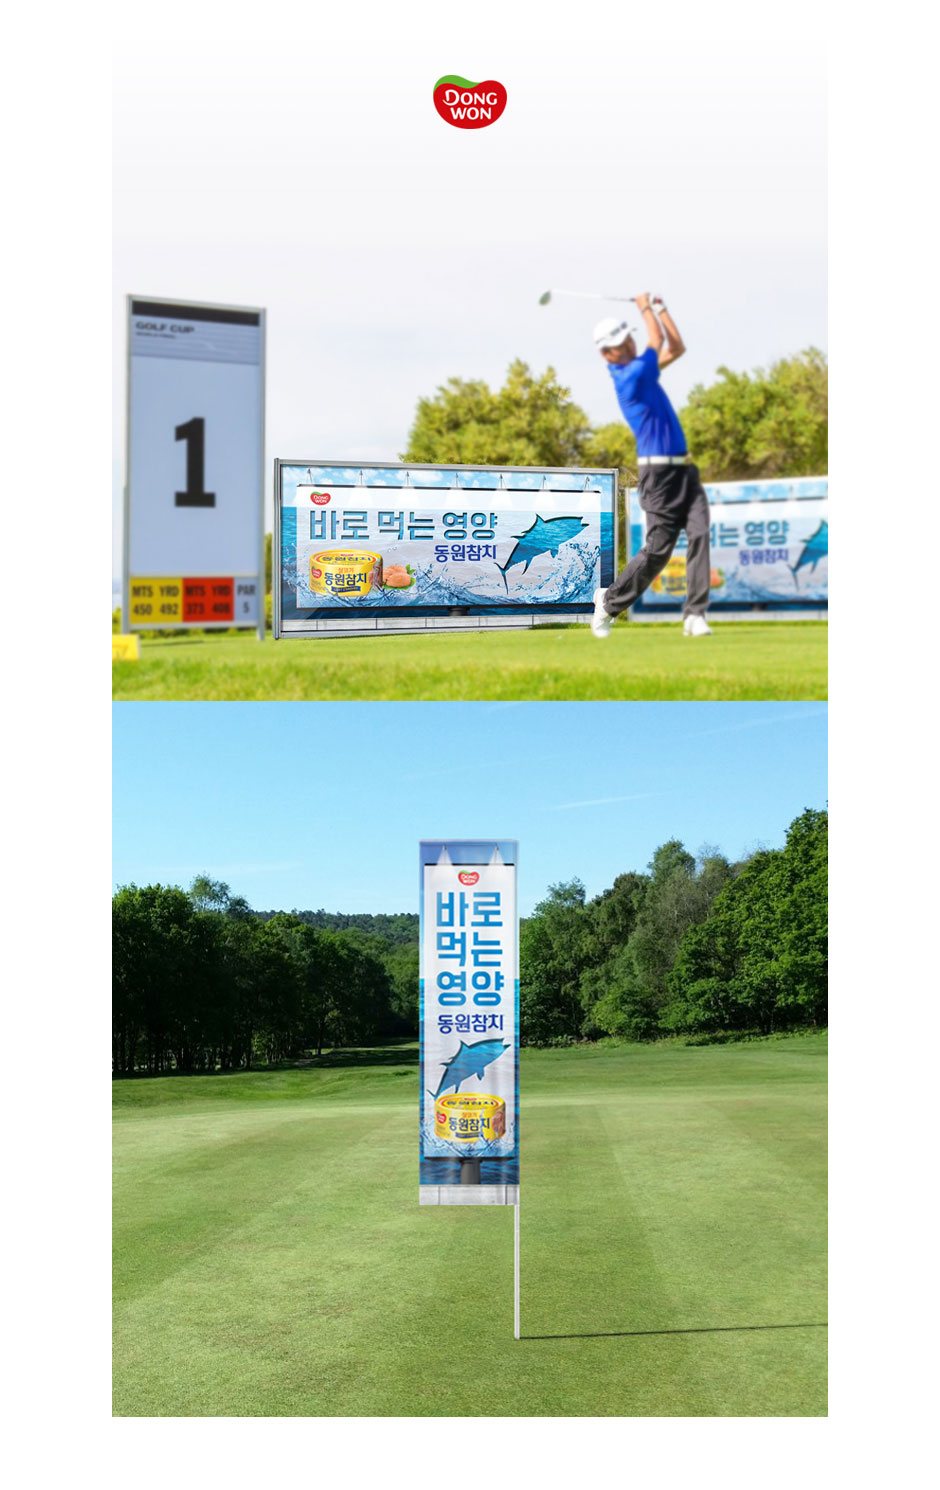 2018_Dongwon FnB Costco advertisement production renewal